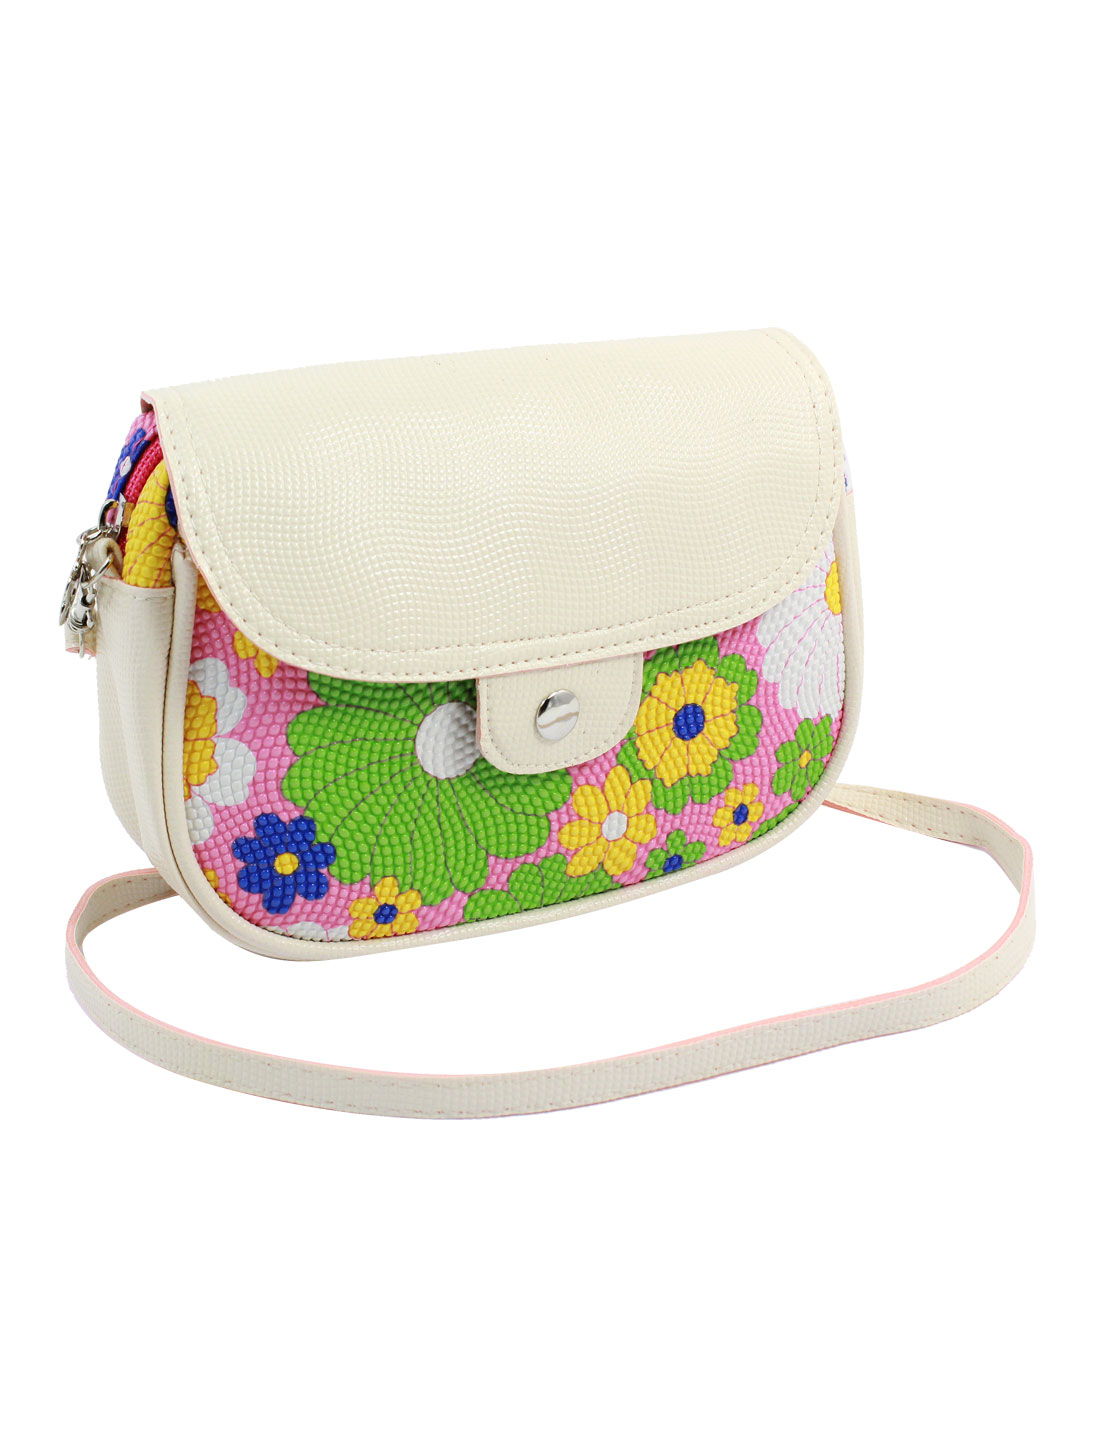 Women 2 Pockets Magnet Button Zipper Closure Floral Print Faux Leather Wallet Purse Bag Pink Fuchsia Green w Strap